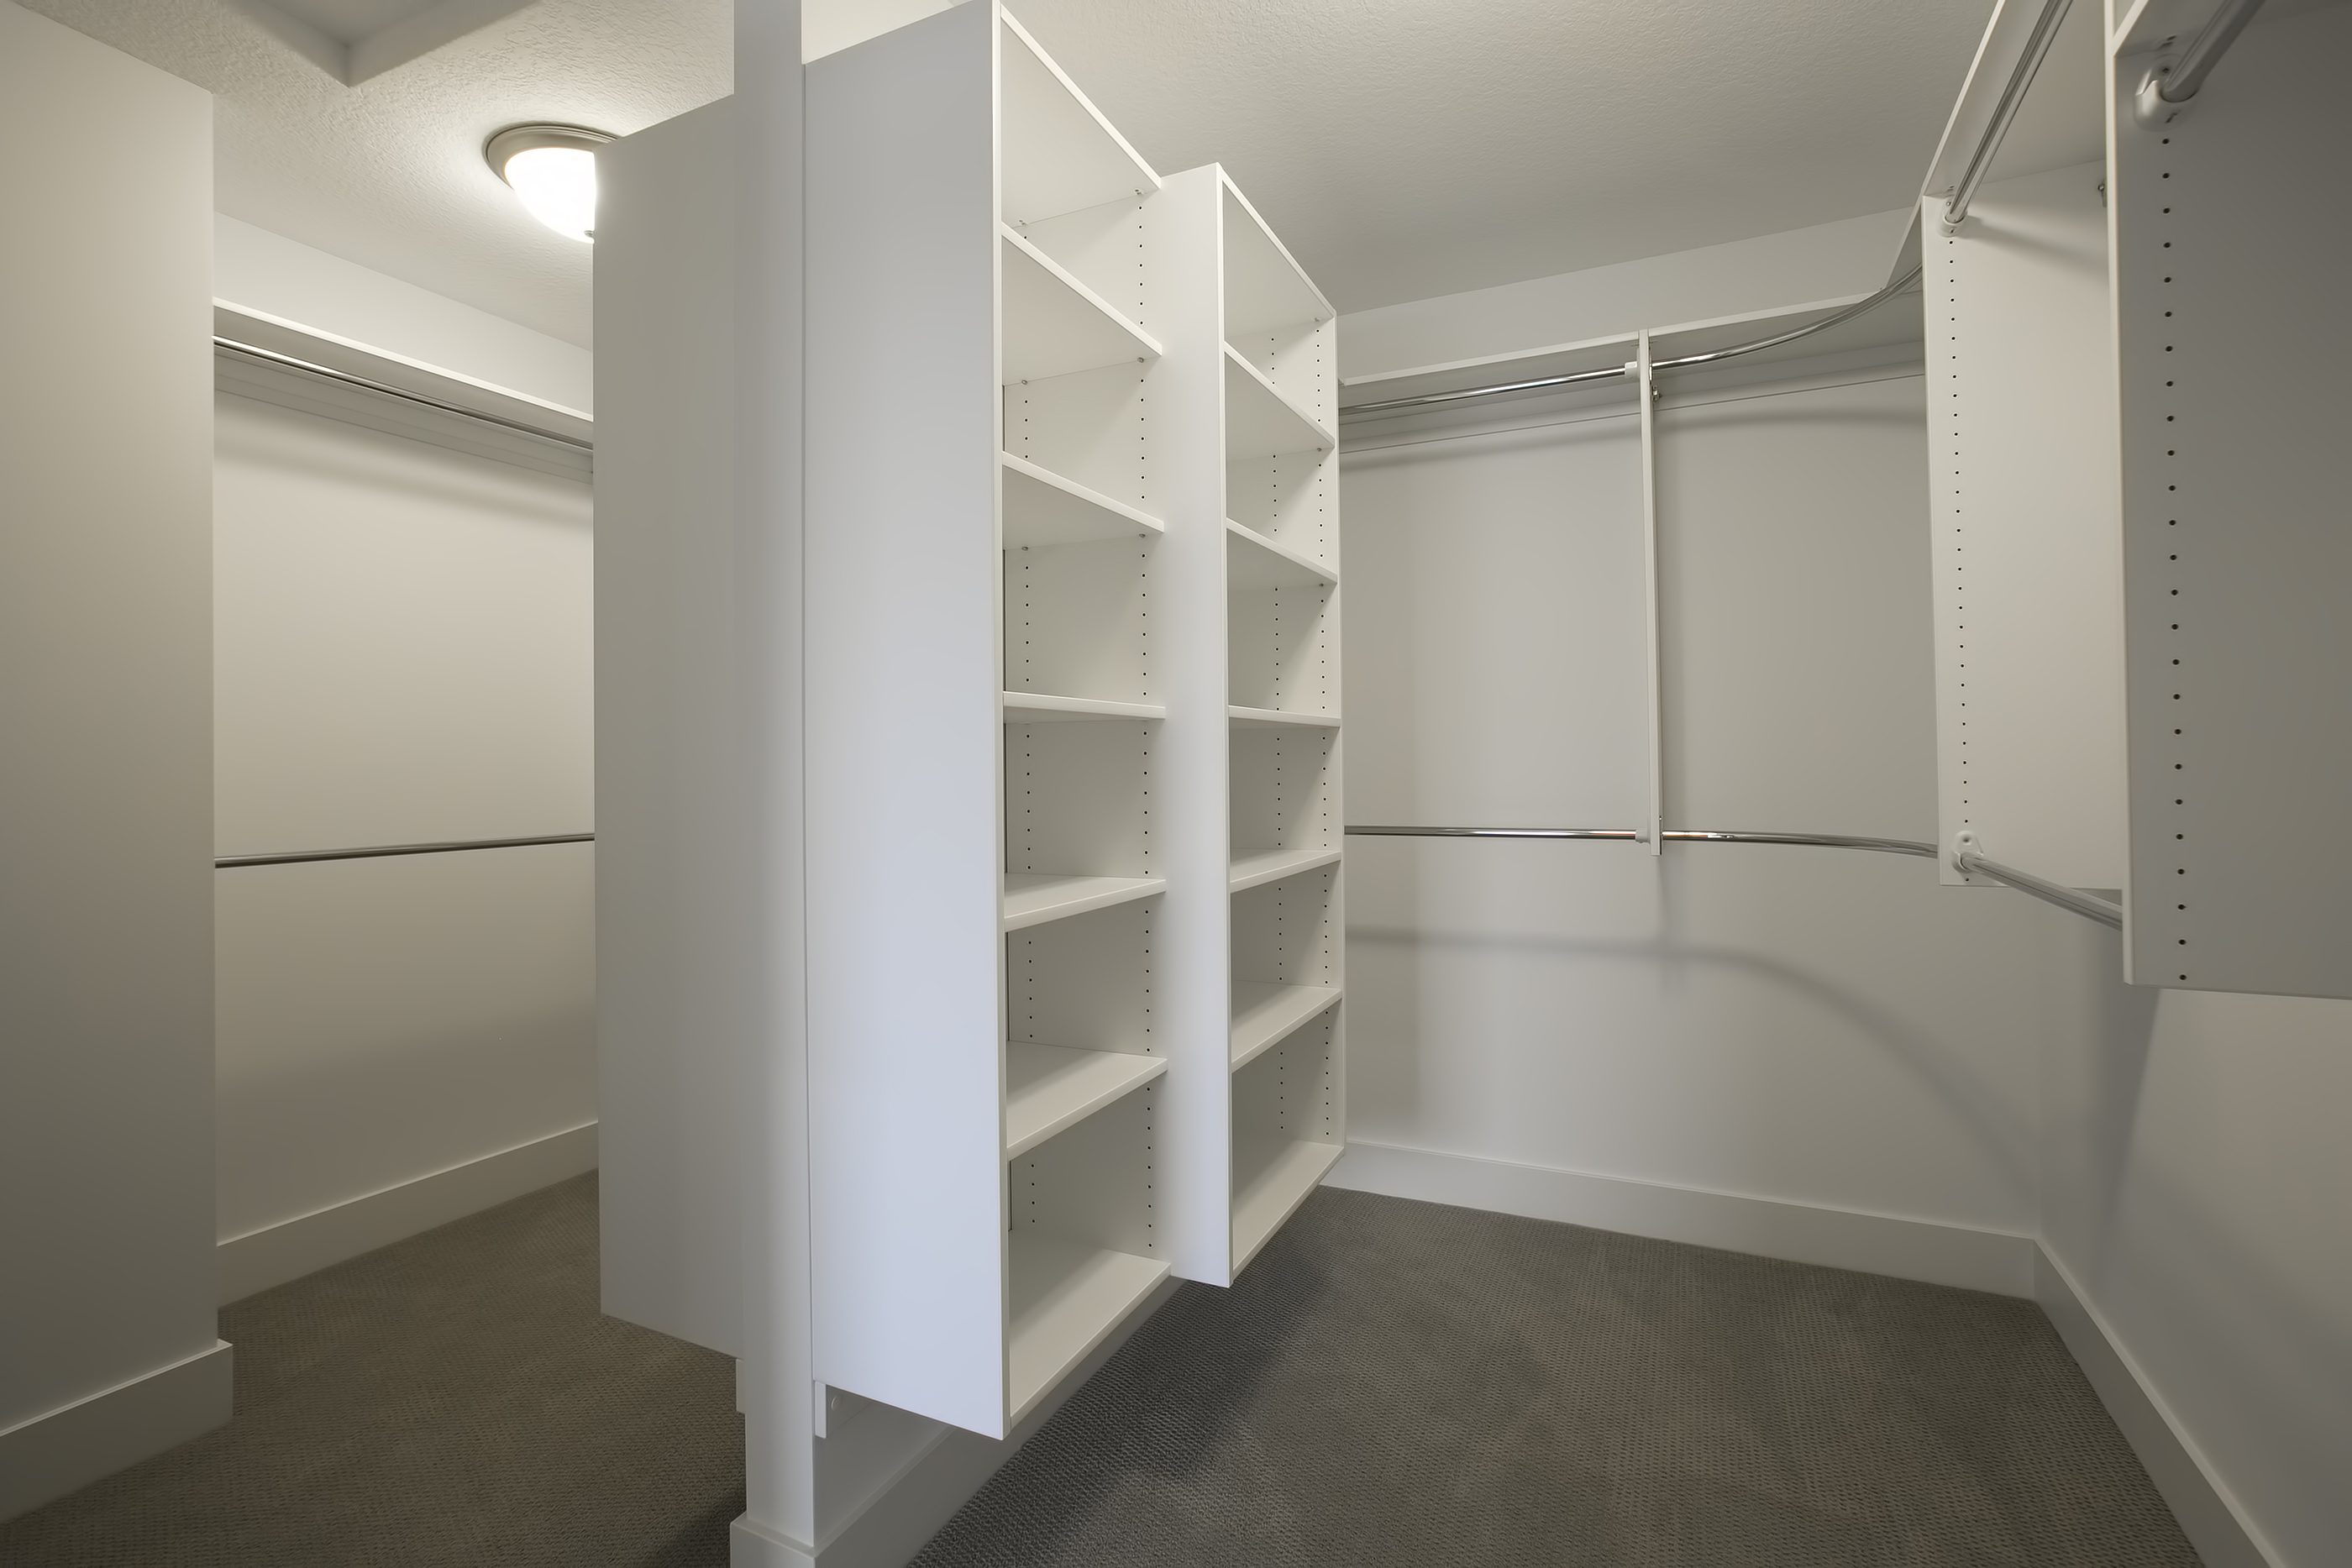 Owner's Wrap Around Master Closet